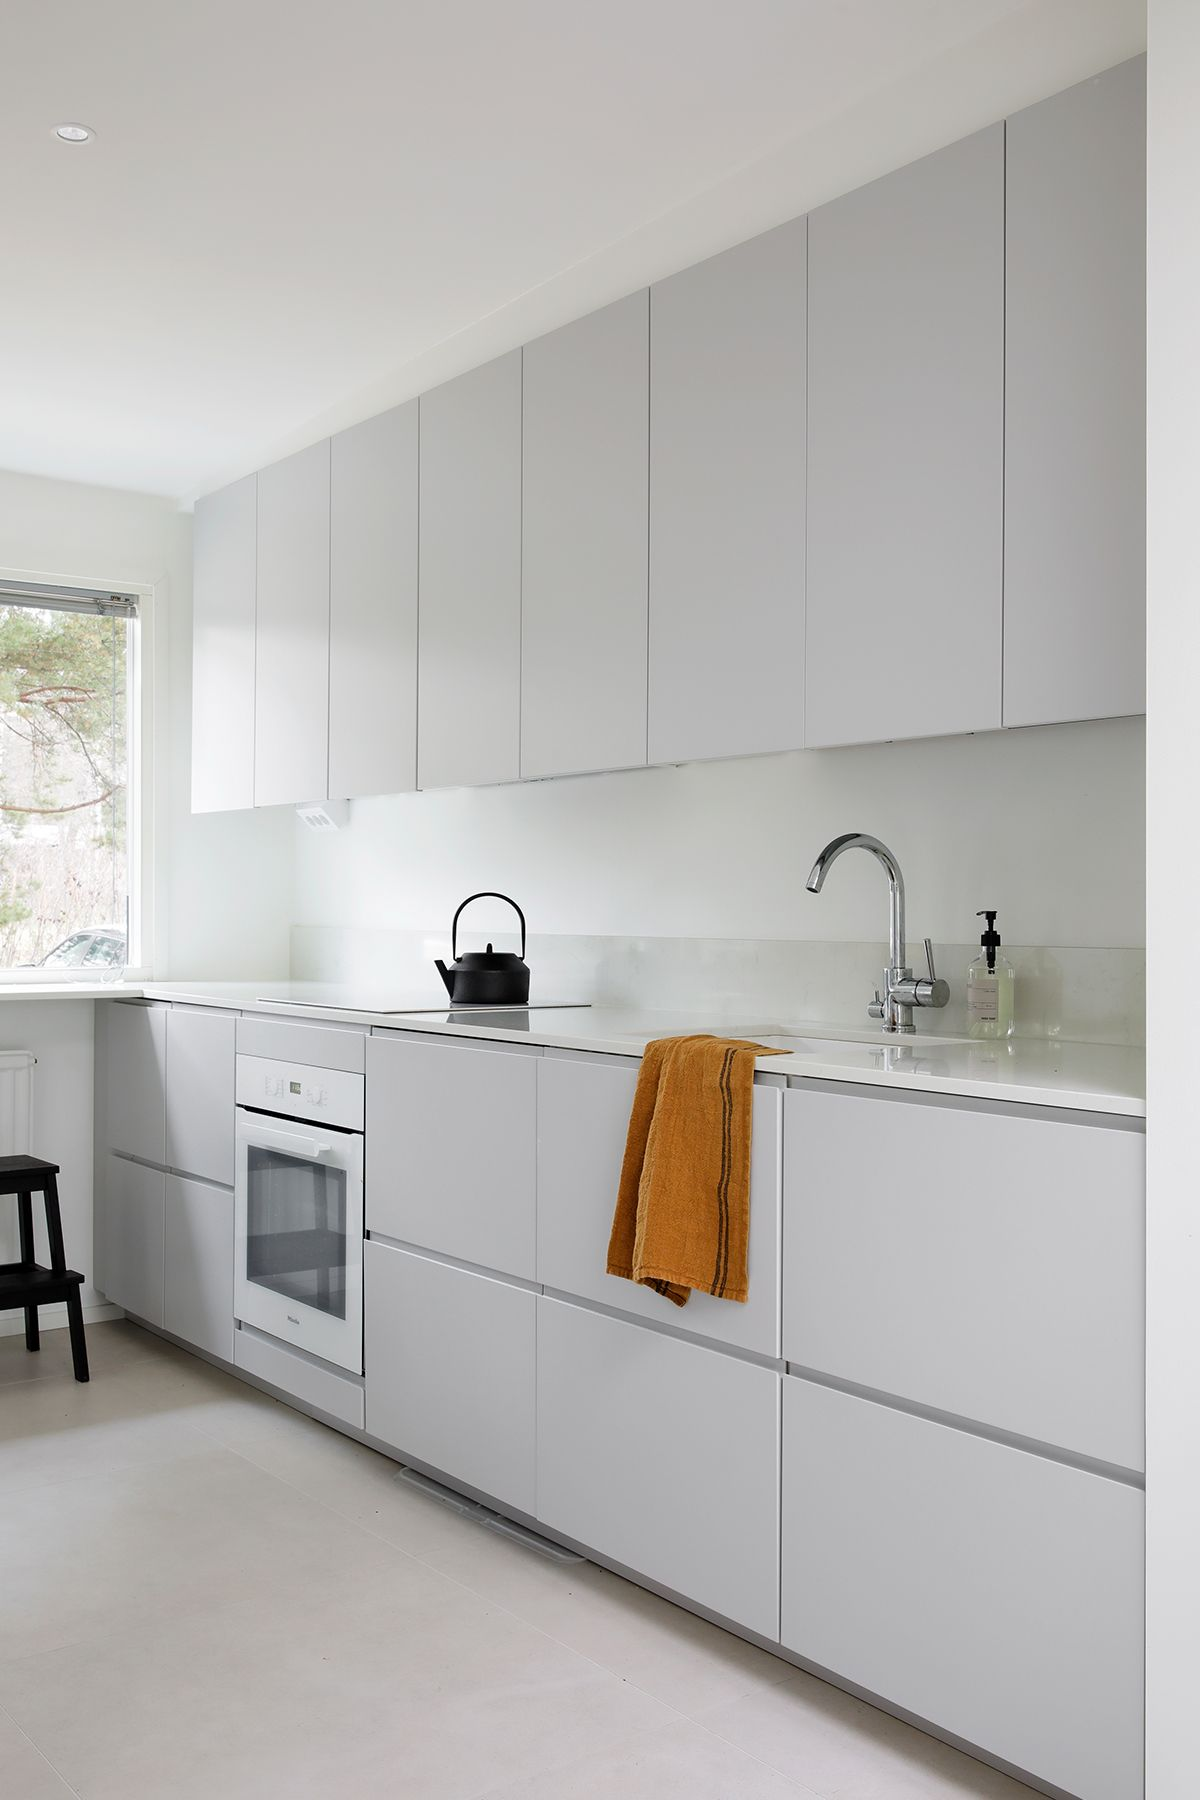 A S Helsingo Kitchens Samso Ikea Metod Kitchen Ikea Kitchen Kitchen Design